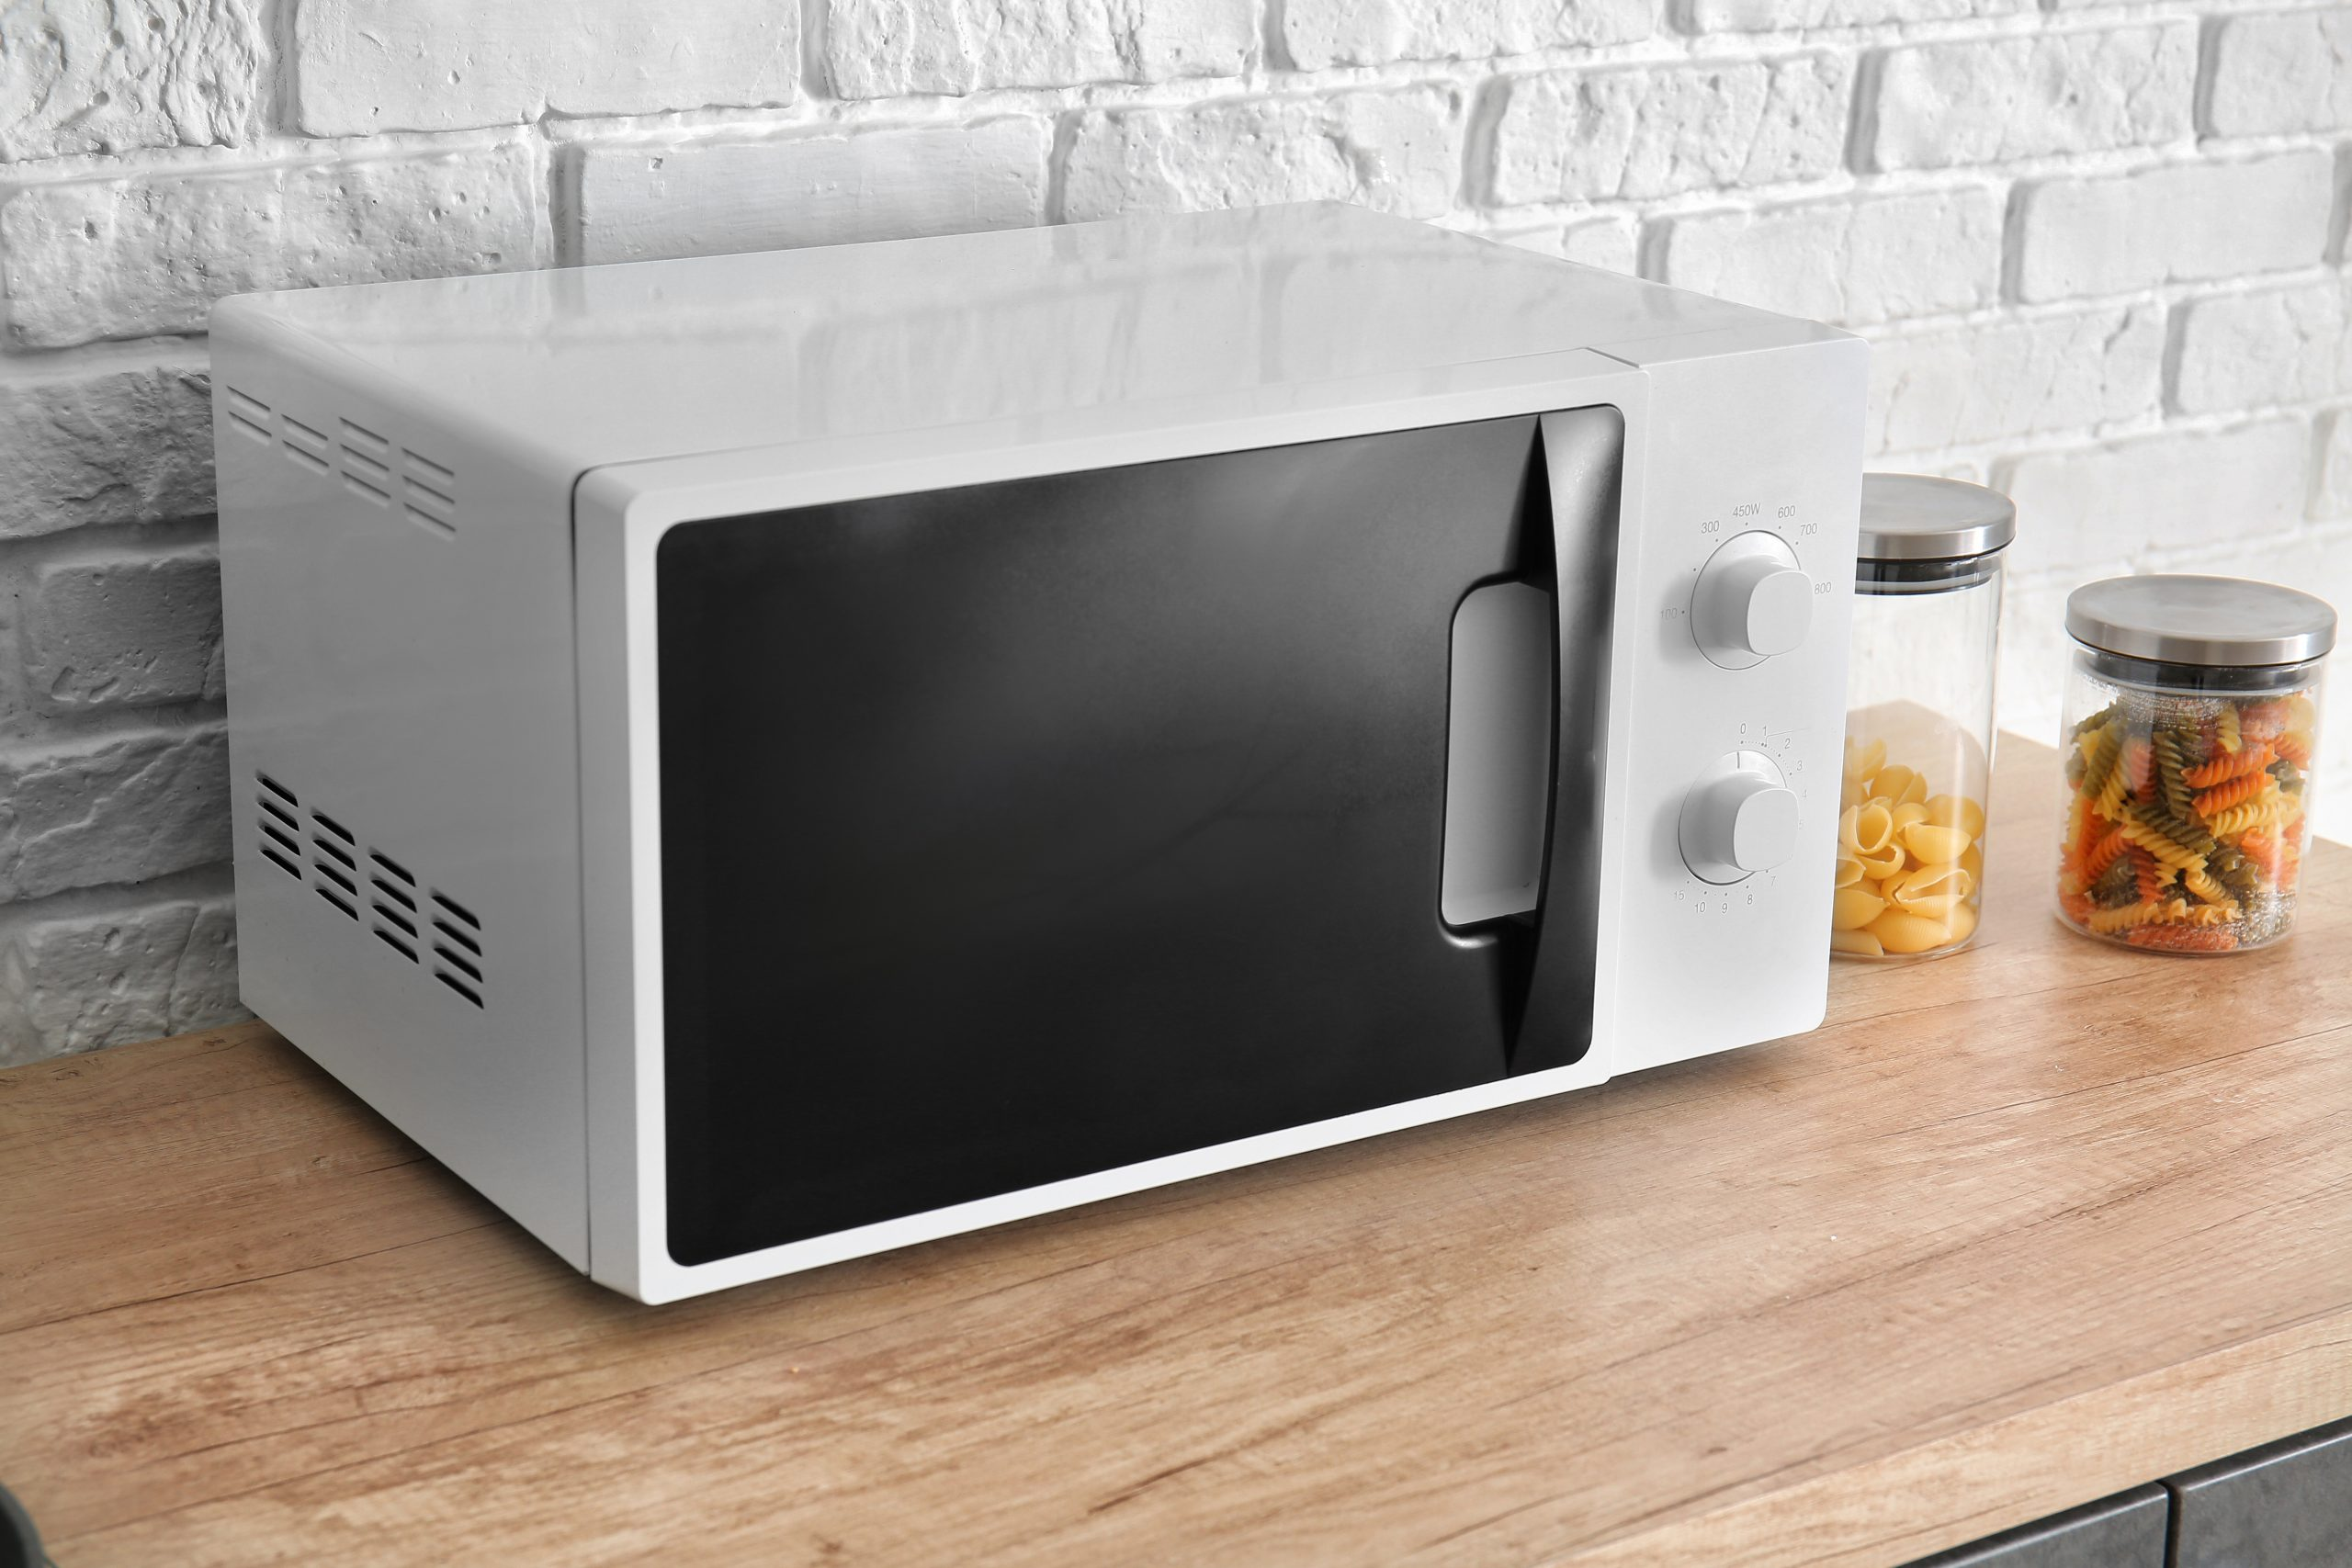 The Best Countertop Convection Oven January 2021